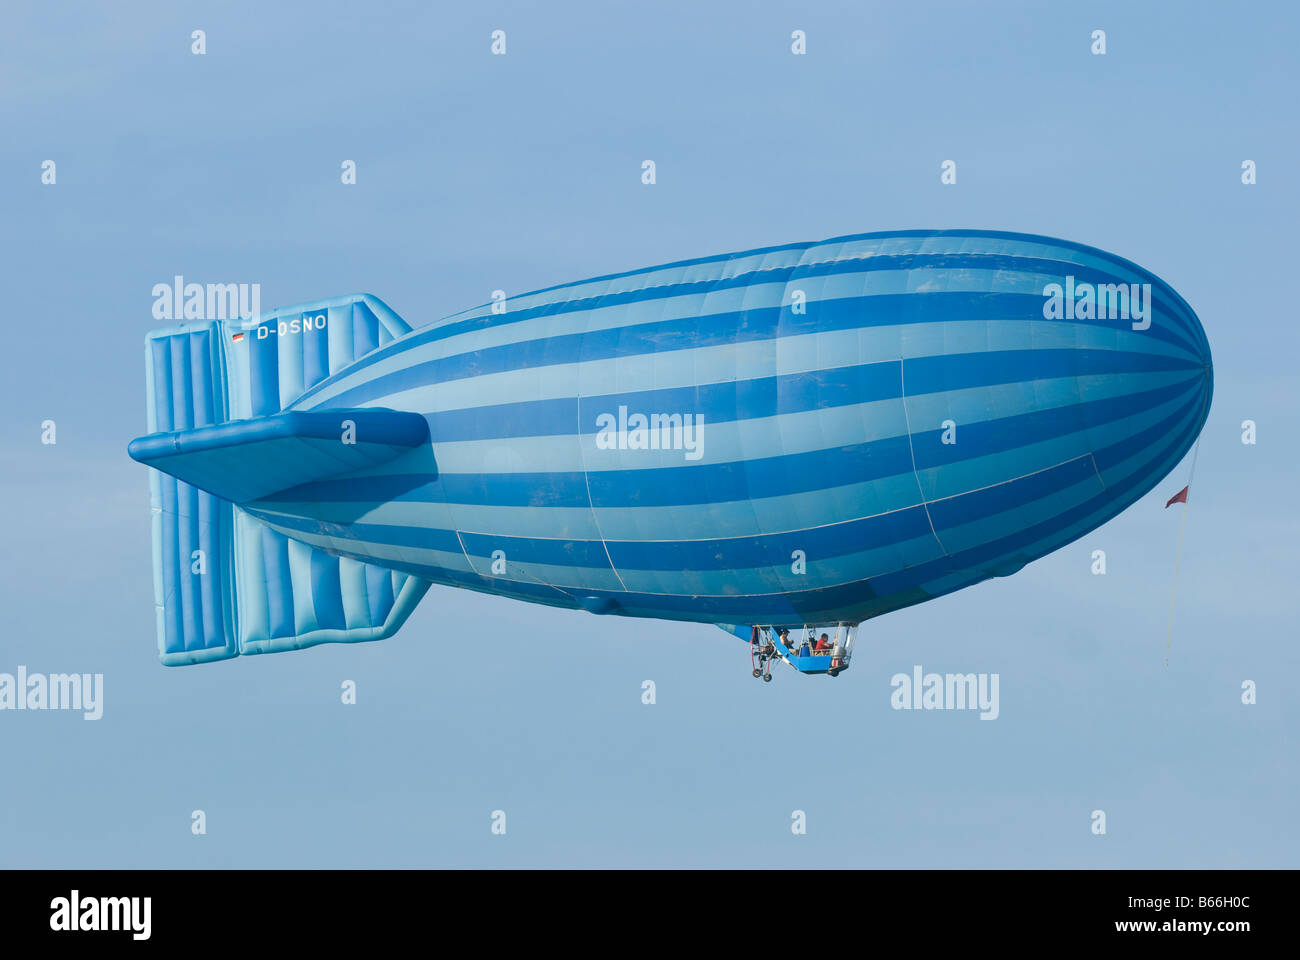 Hot air balloon with German registration shaped as an old fashioned airship Stock Photo